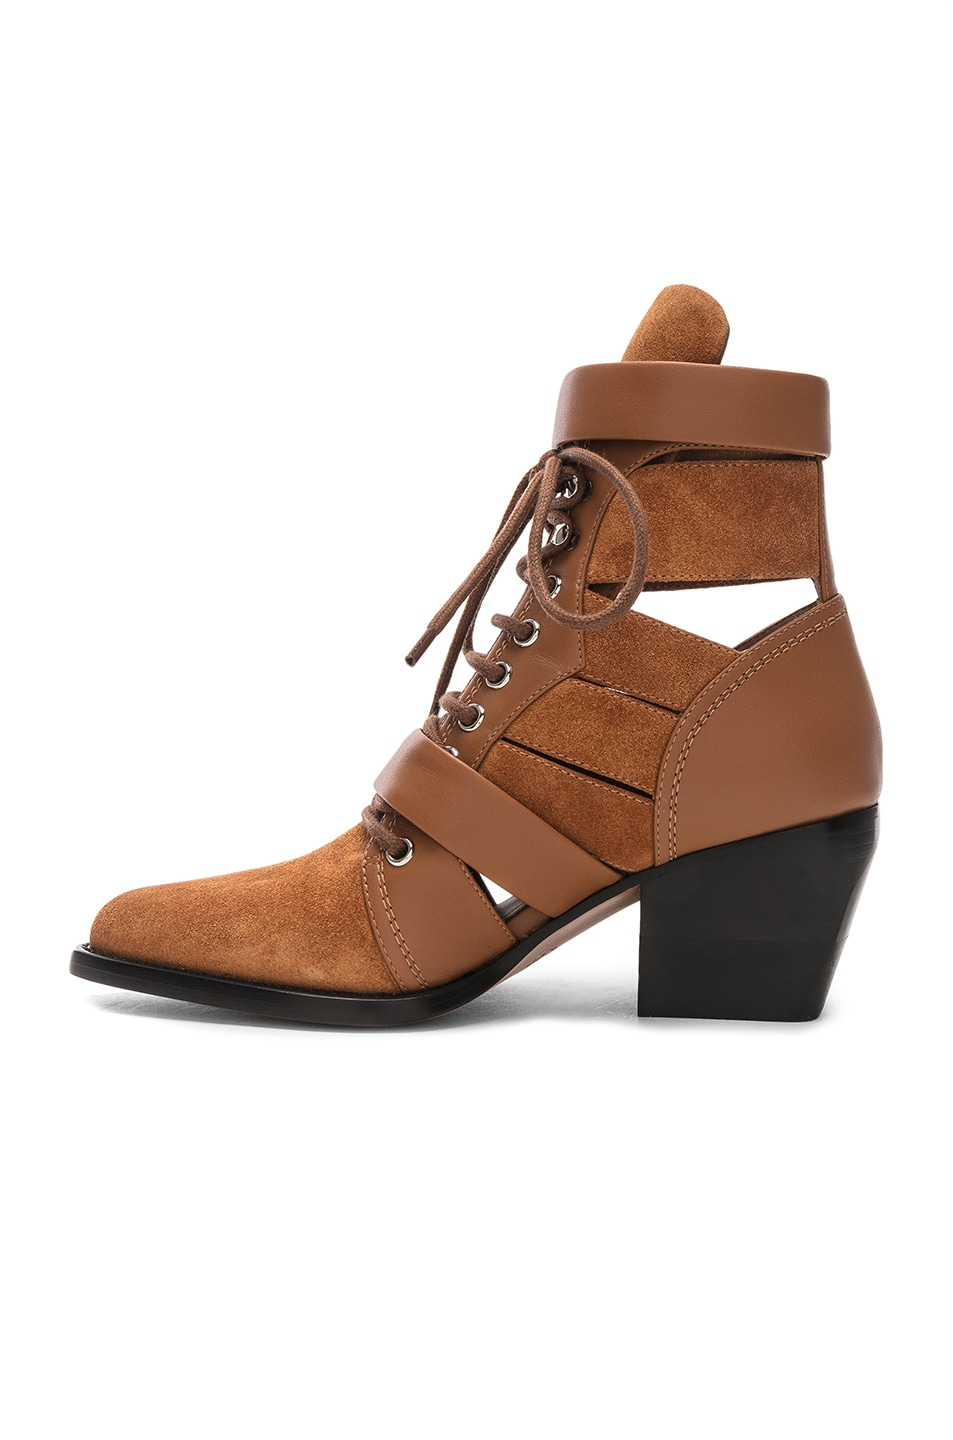 Image 5 of Chloe Lace Up Booties in Natural Brown